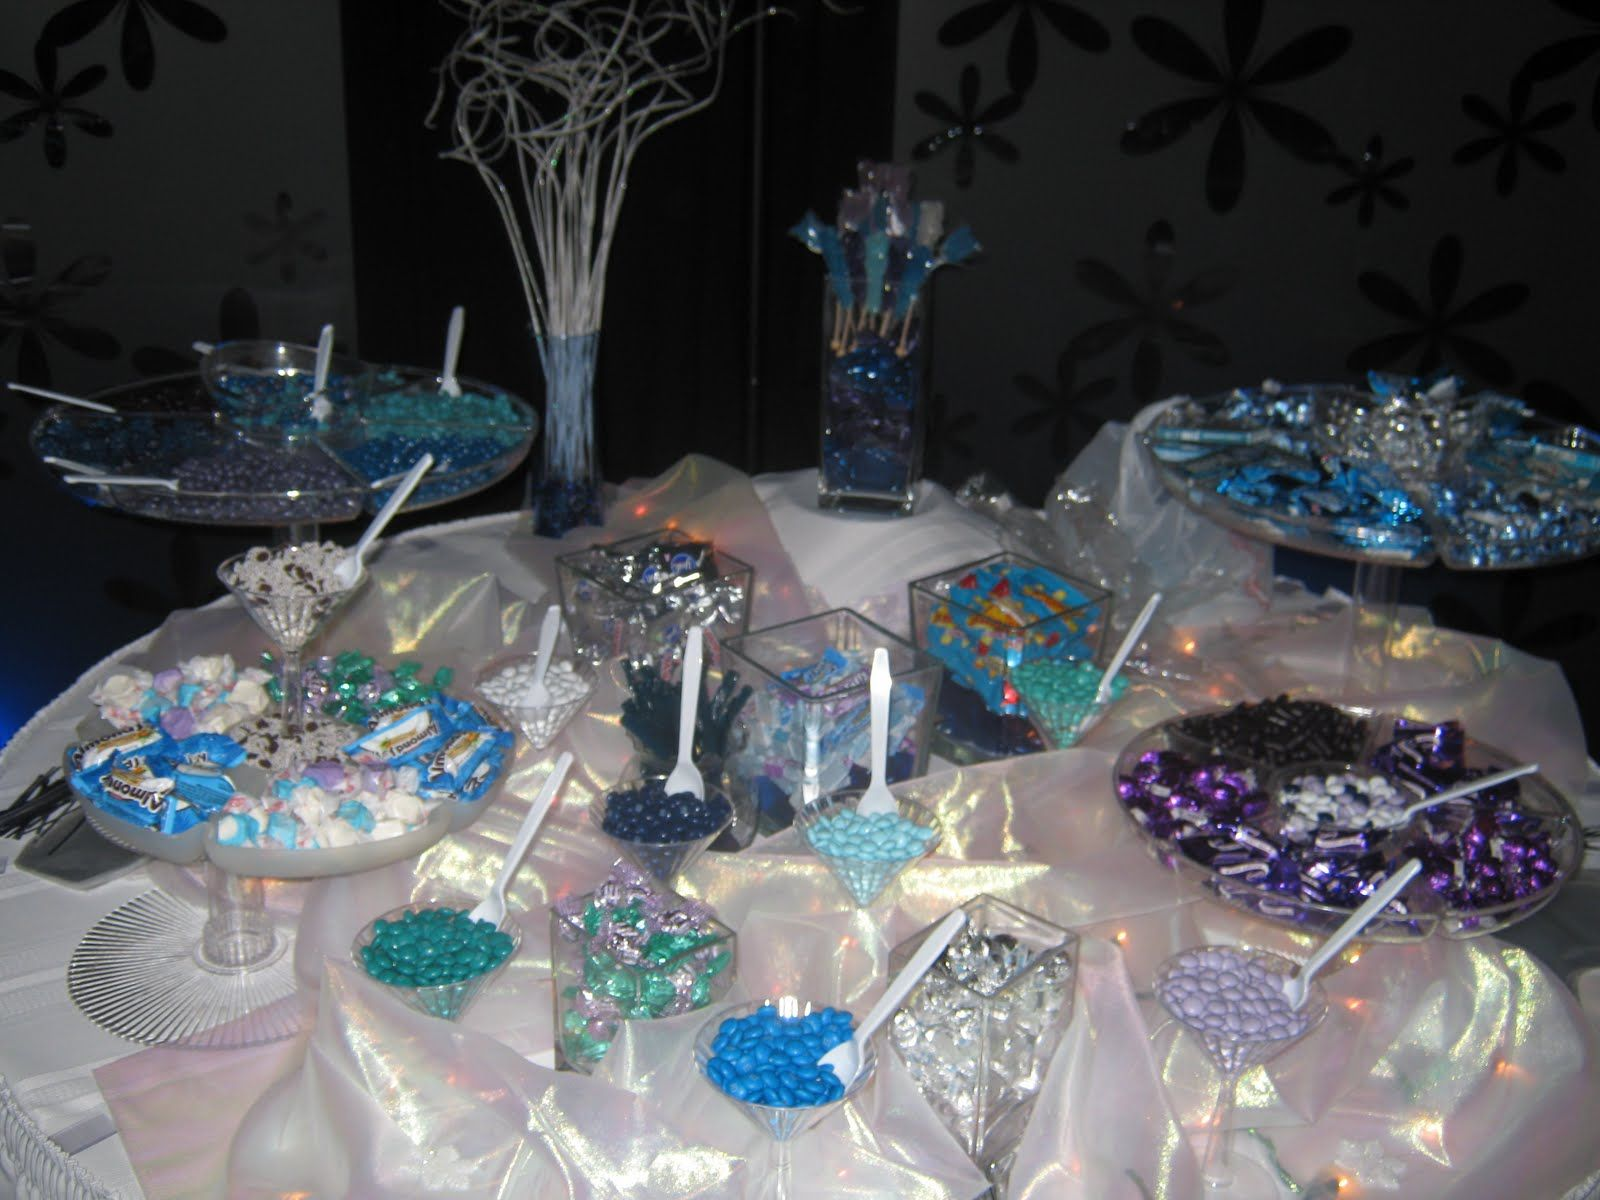 These would work well for a winter wonderland themed party too